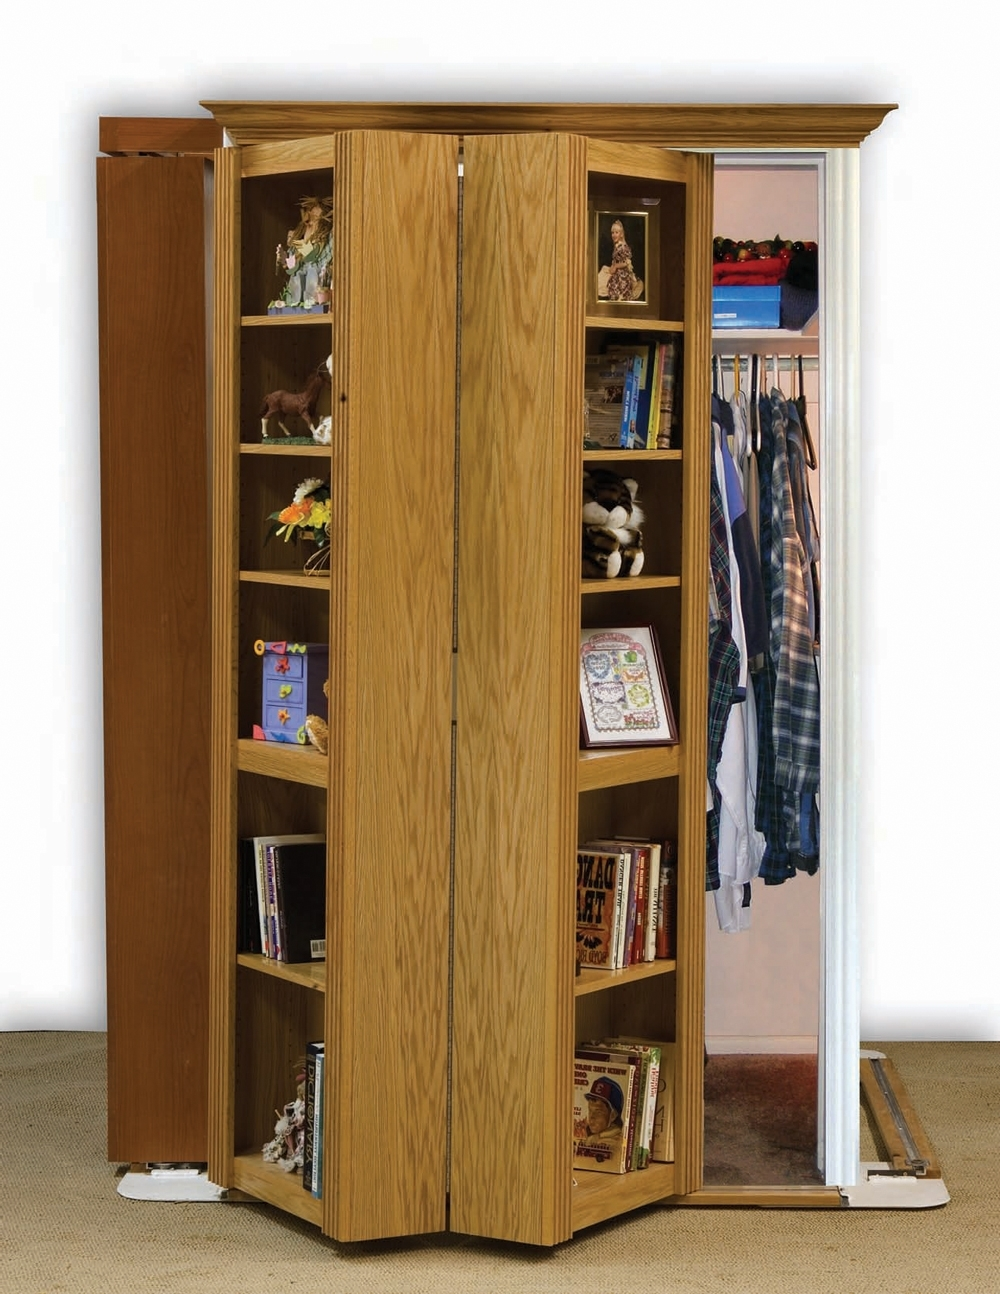 New Secret Door Kits From Rockler – Kits Make Easy To Build Secret In Favorite Secret Door Bookcases (View 8 of 15)